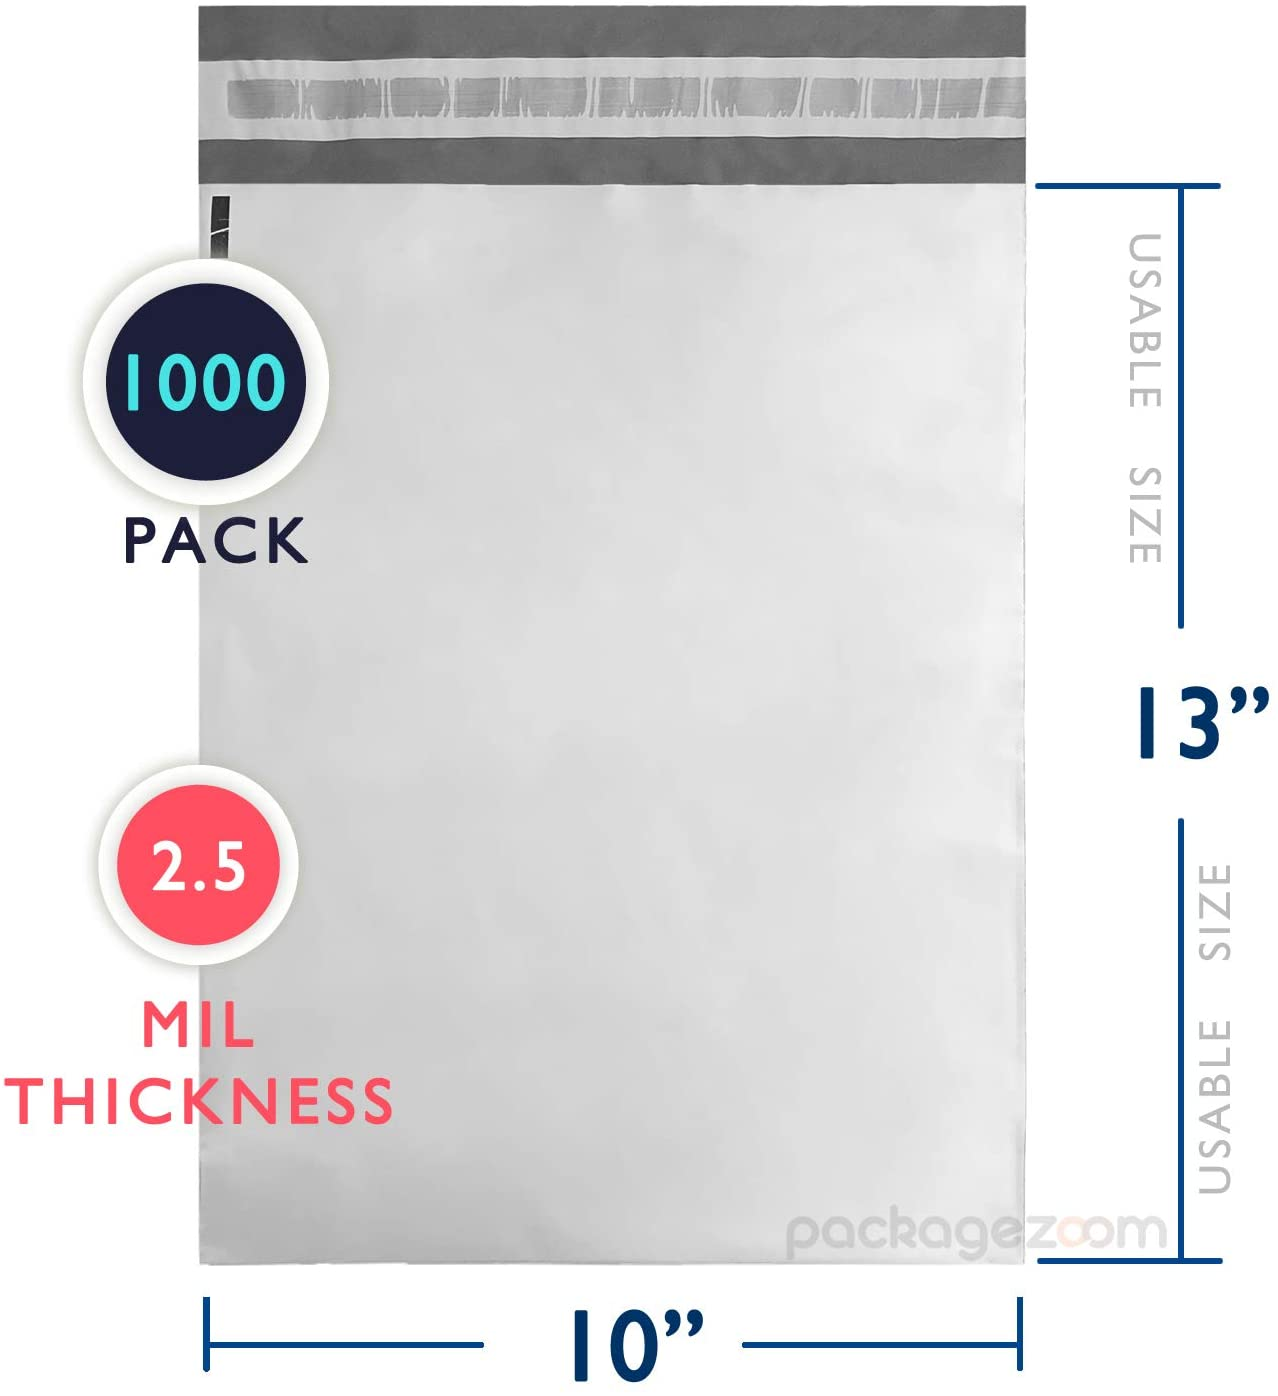 PackageZoom 1000 Pcs 10 x 13 Poly Mailer Envelopes Double Layer 2.5 Mil Shipping Bags with Self Sealing and Waterproof Tear-Proof Postal Bags, White